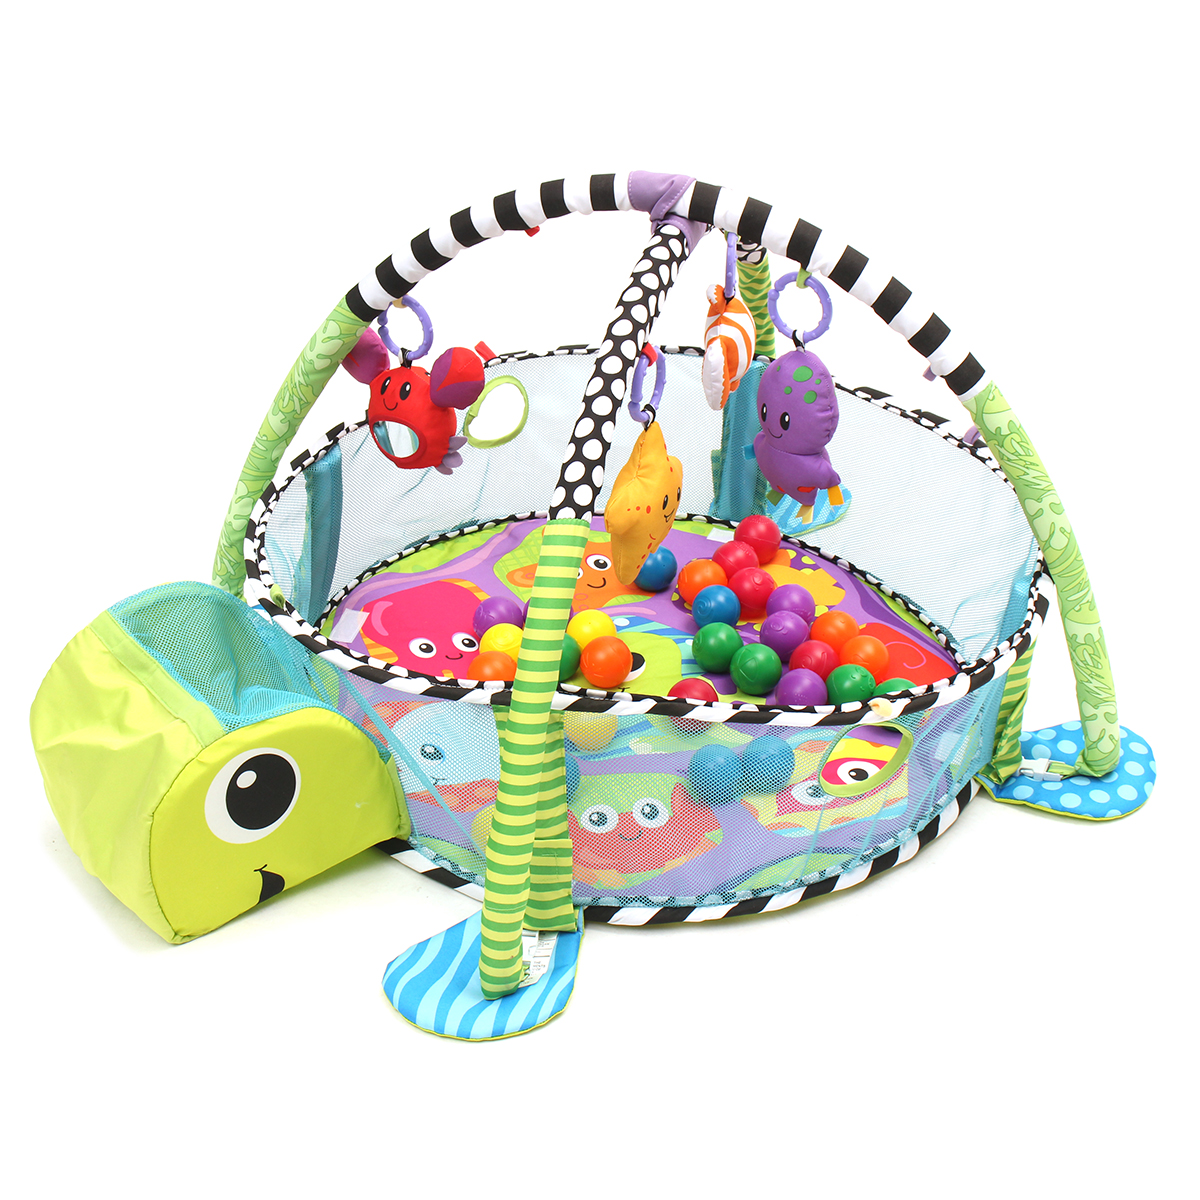 Baby Activity Gym Game Center Turtle Play Mat Infant Hanging Toys Toddler Balls Pit Grow Development Station